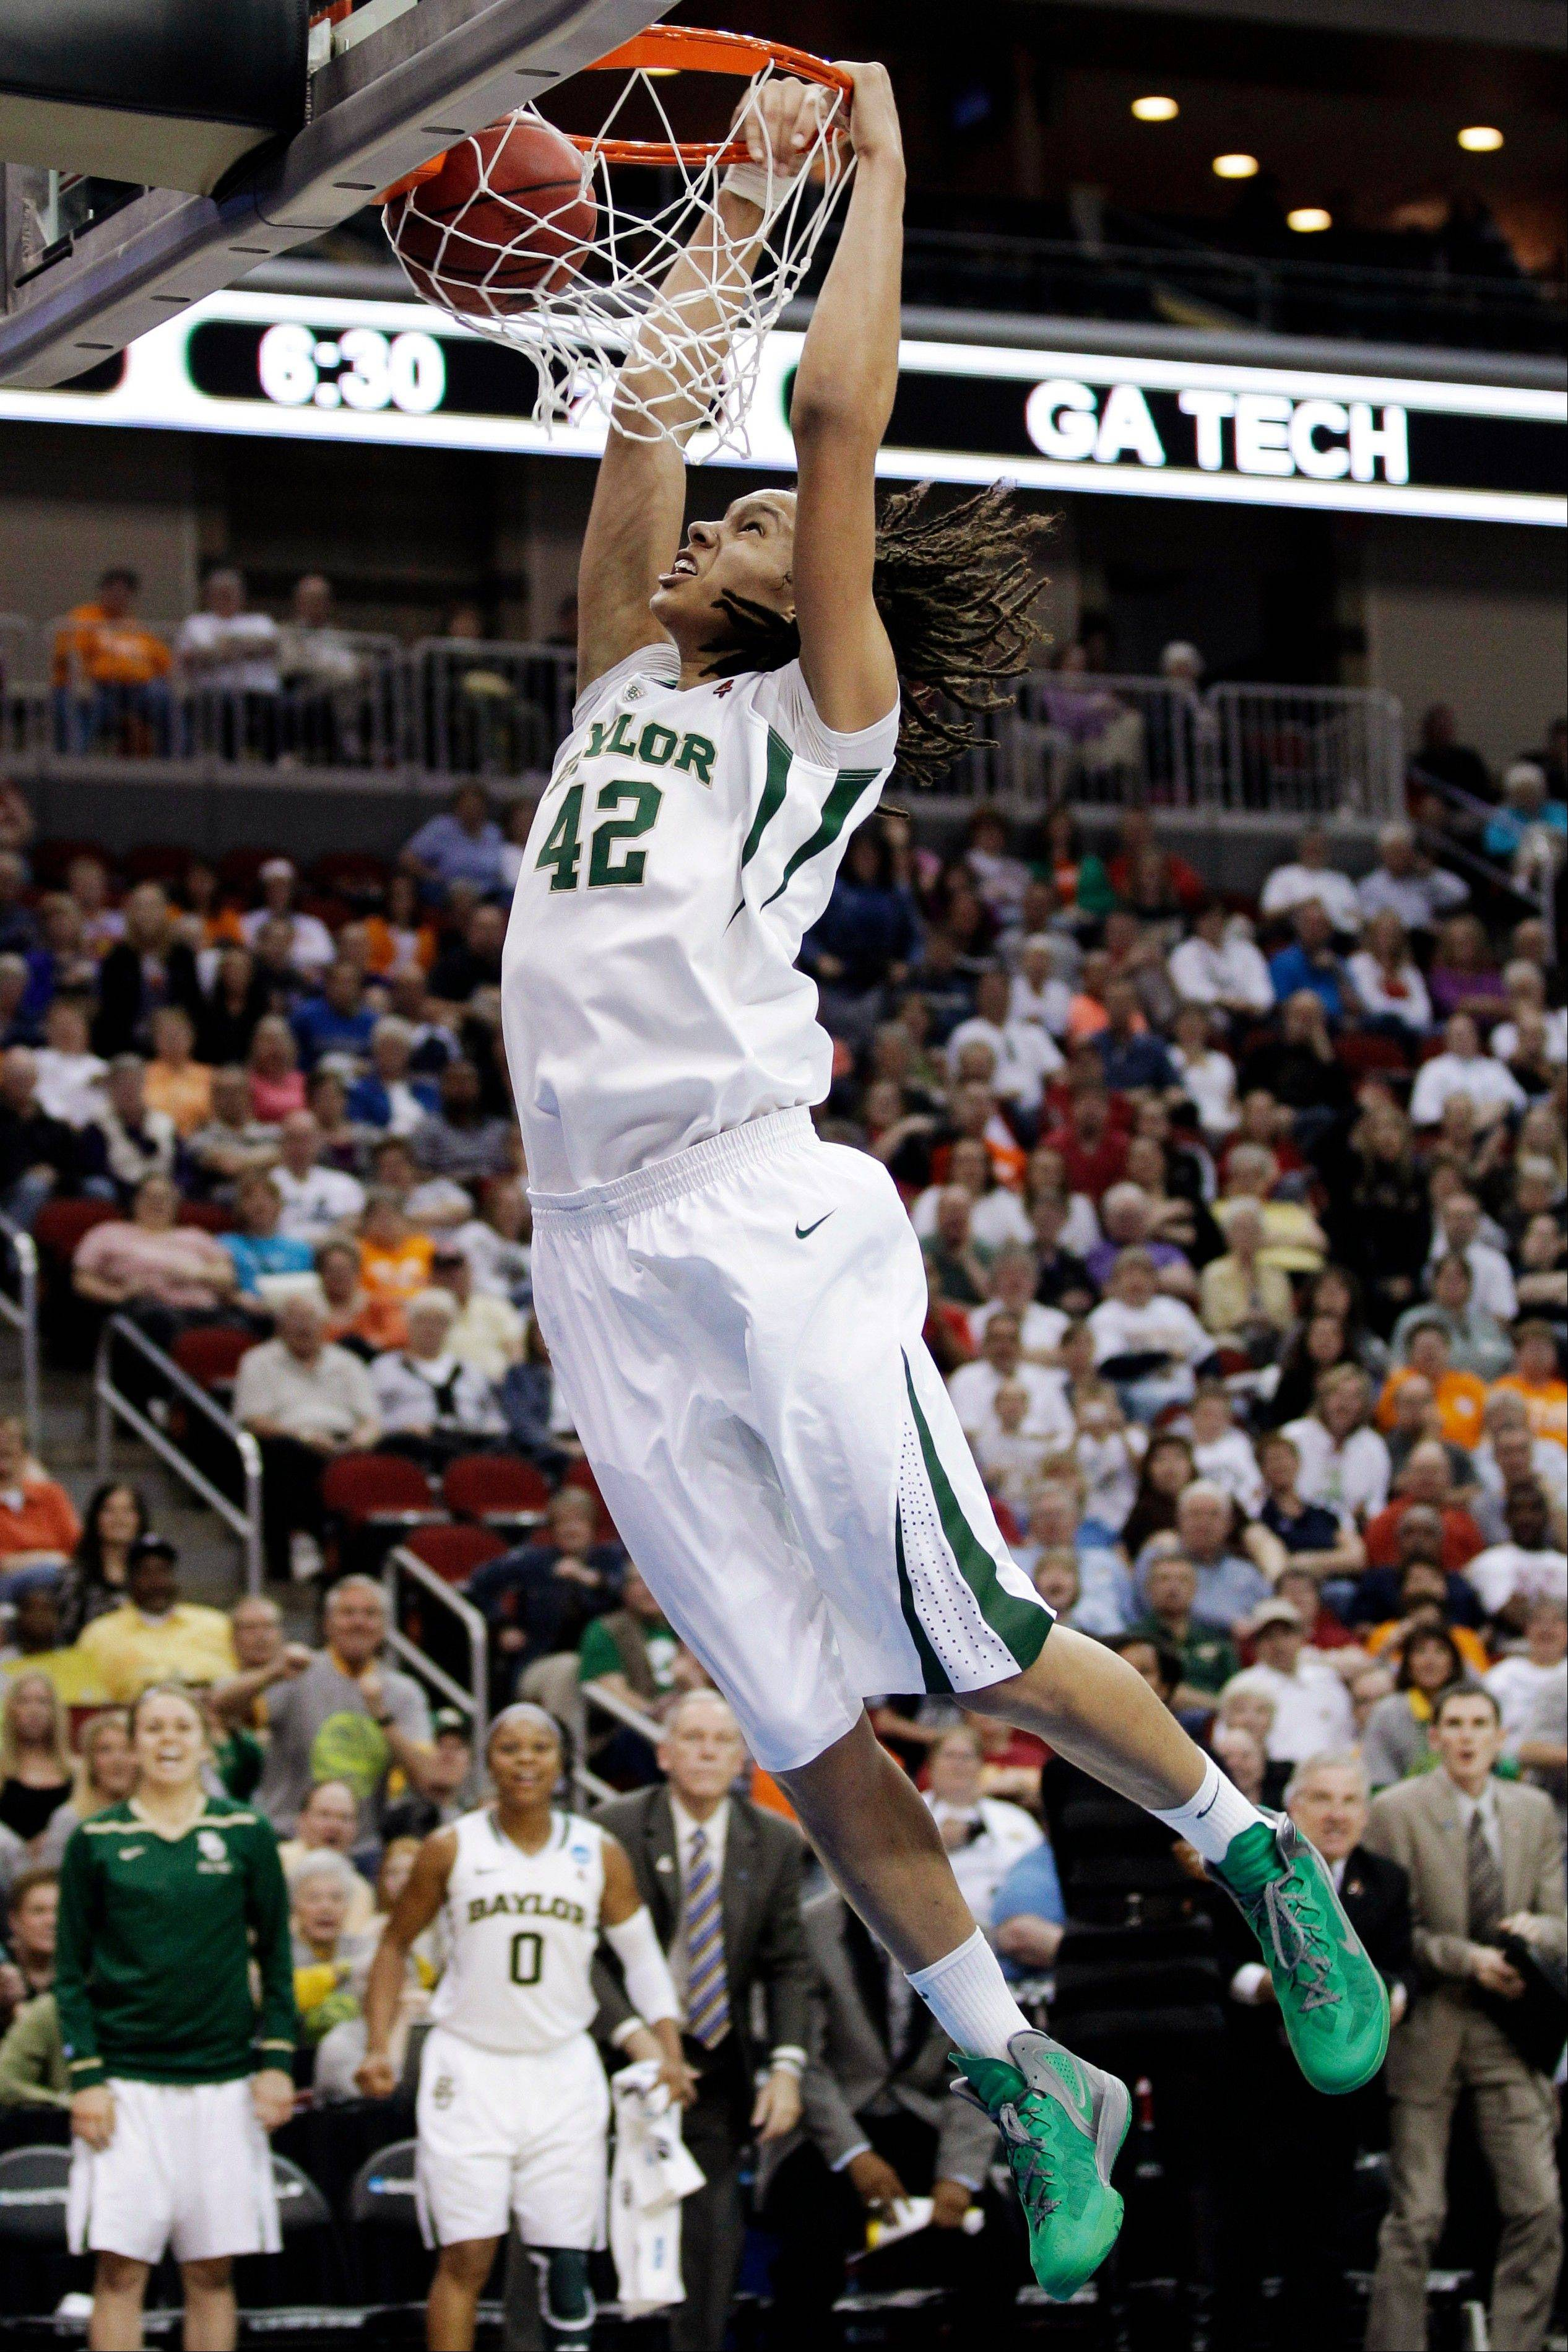 Baylor center Brittney Griner became only the third player to be a two-time unanimous choice on The Associated Press' women's basketball preseason All-America team, receiving all 40 votes from a national media panel.